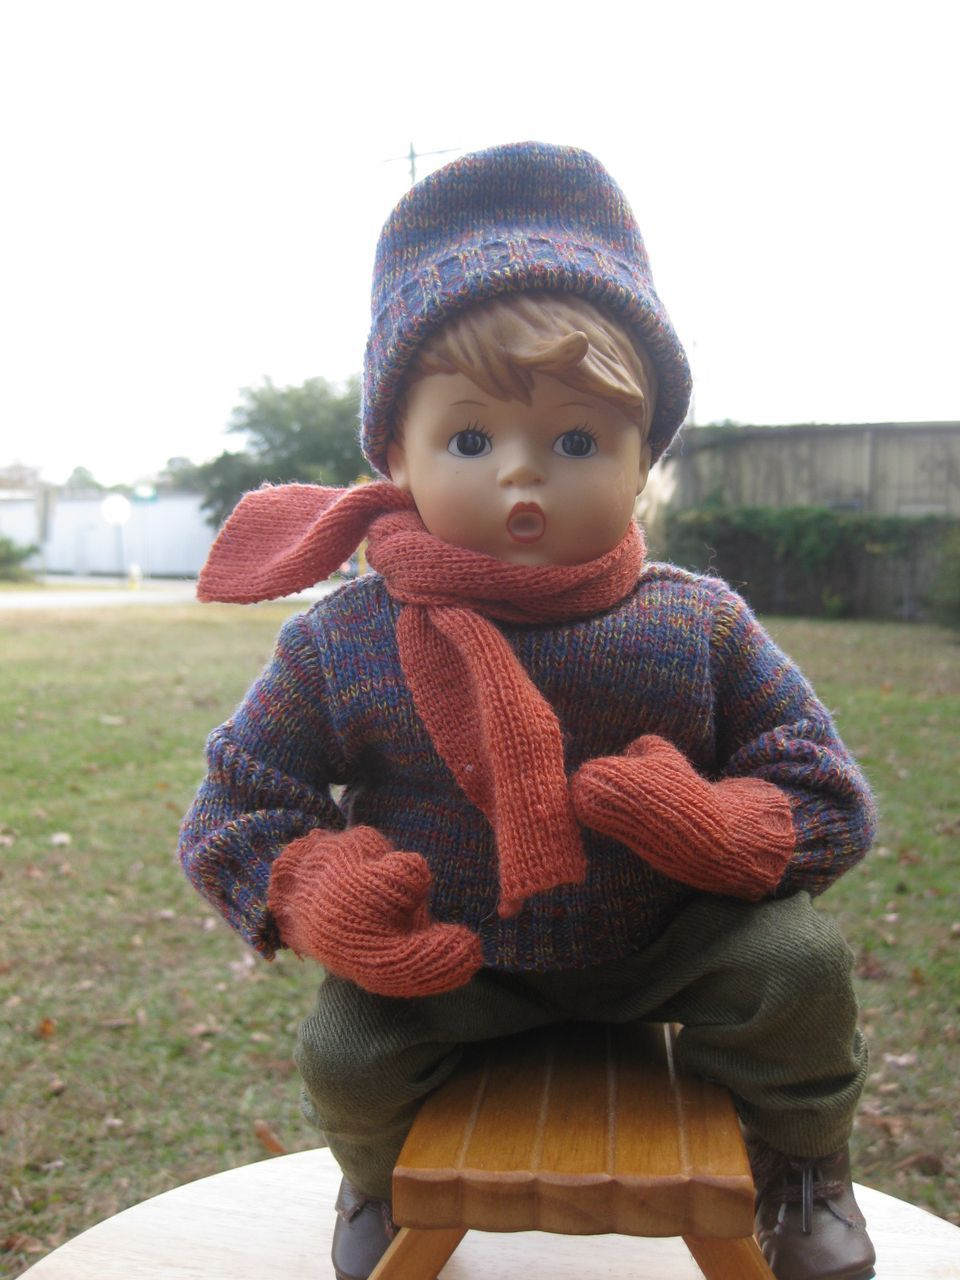 Goebel Vinyl Hummel Doll On Sled From Dustytreasure90 On